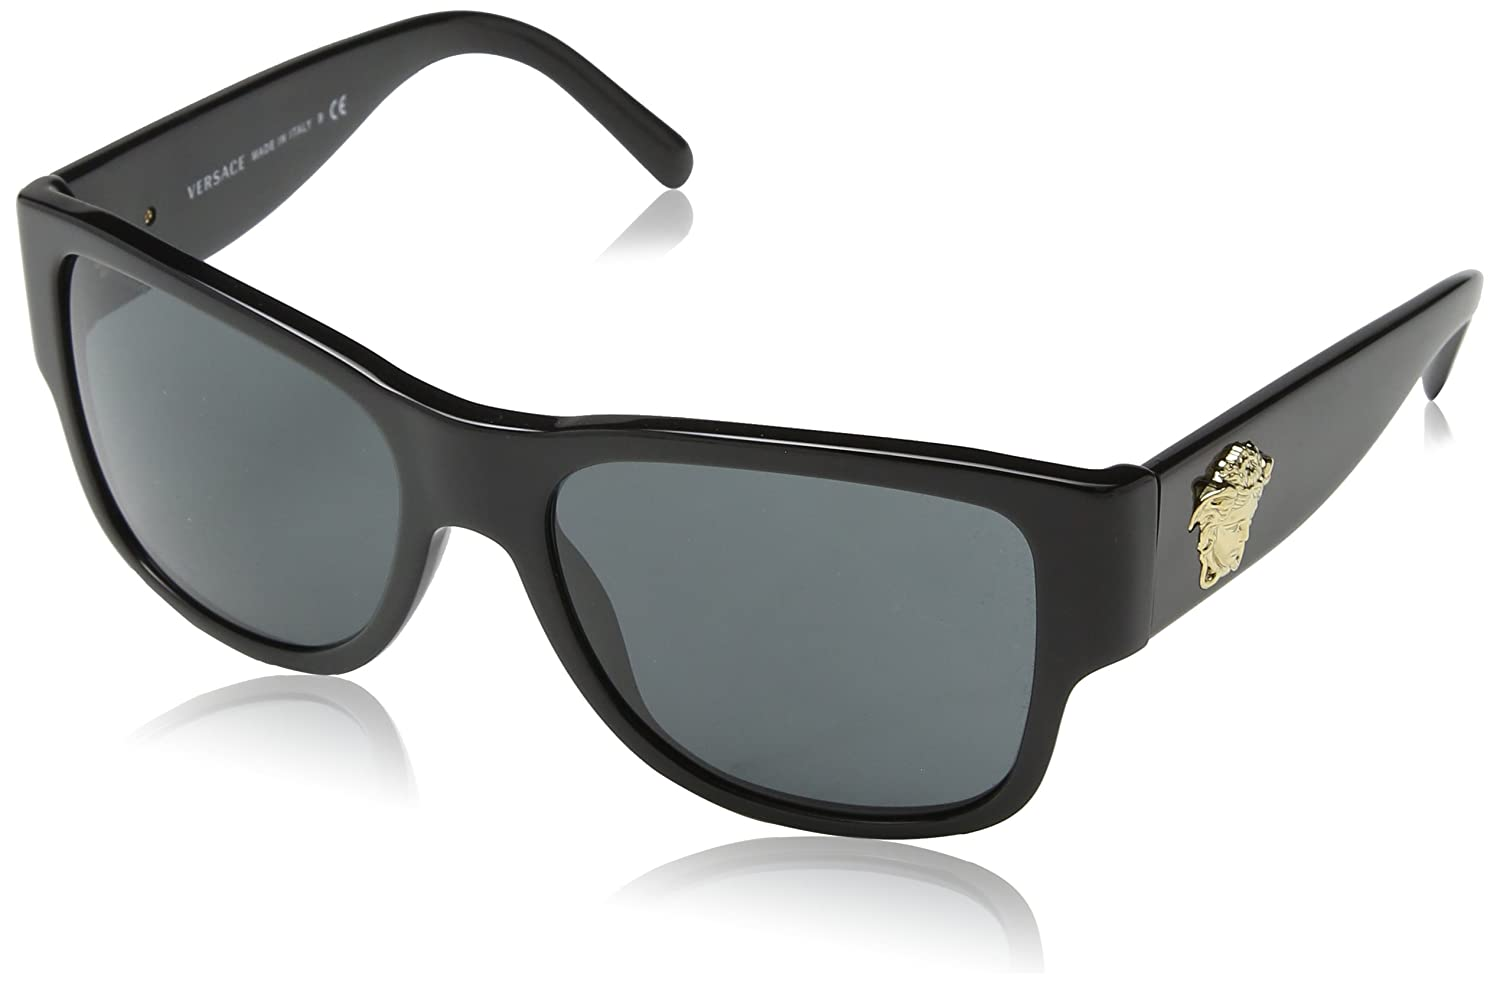 e8f8cb0b789 Amazon.com  Versace sunglasses VE4275 GB1 87 Acetate Black - Gold Black   Shoes